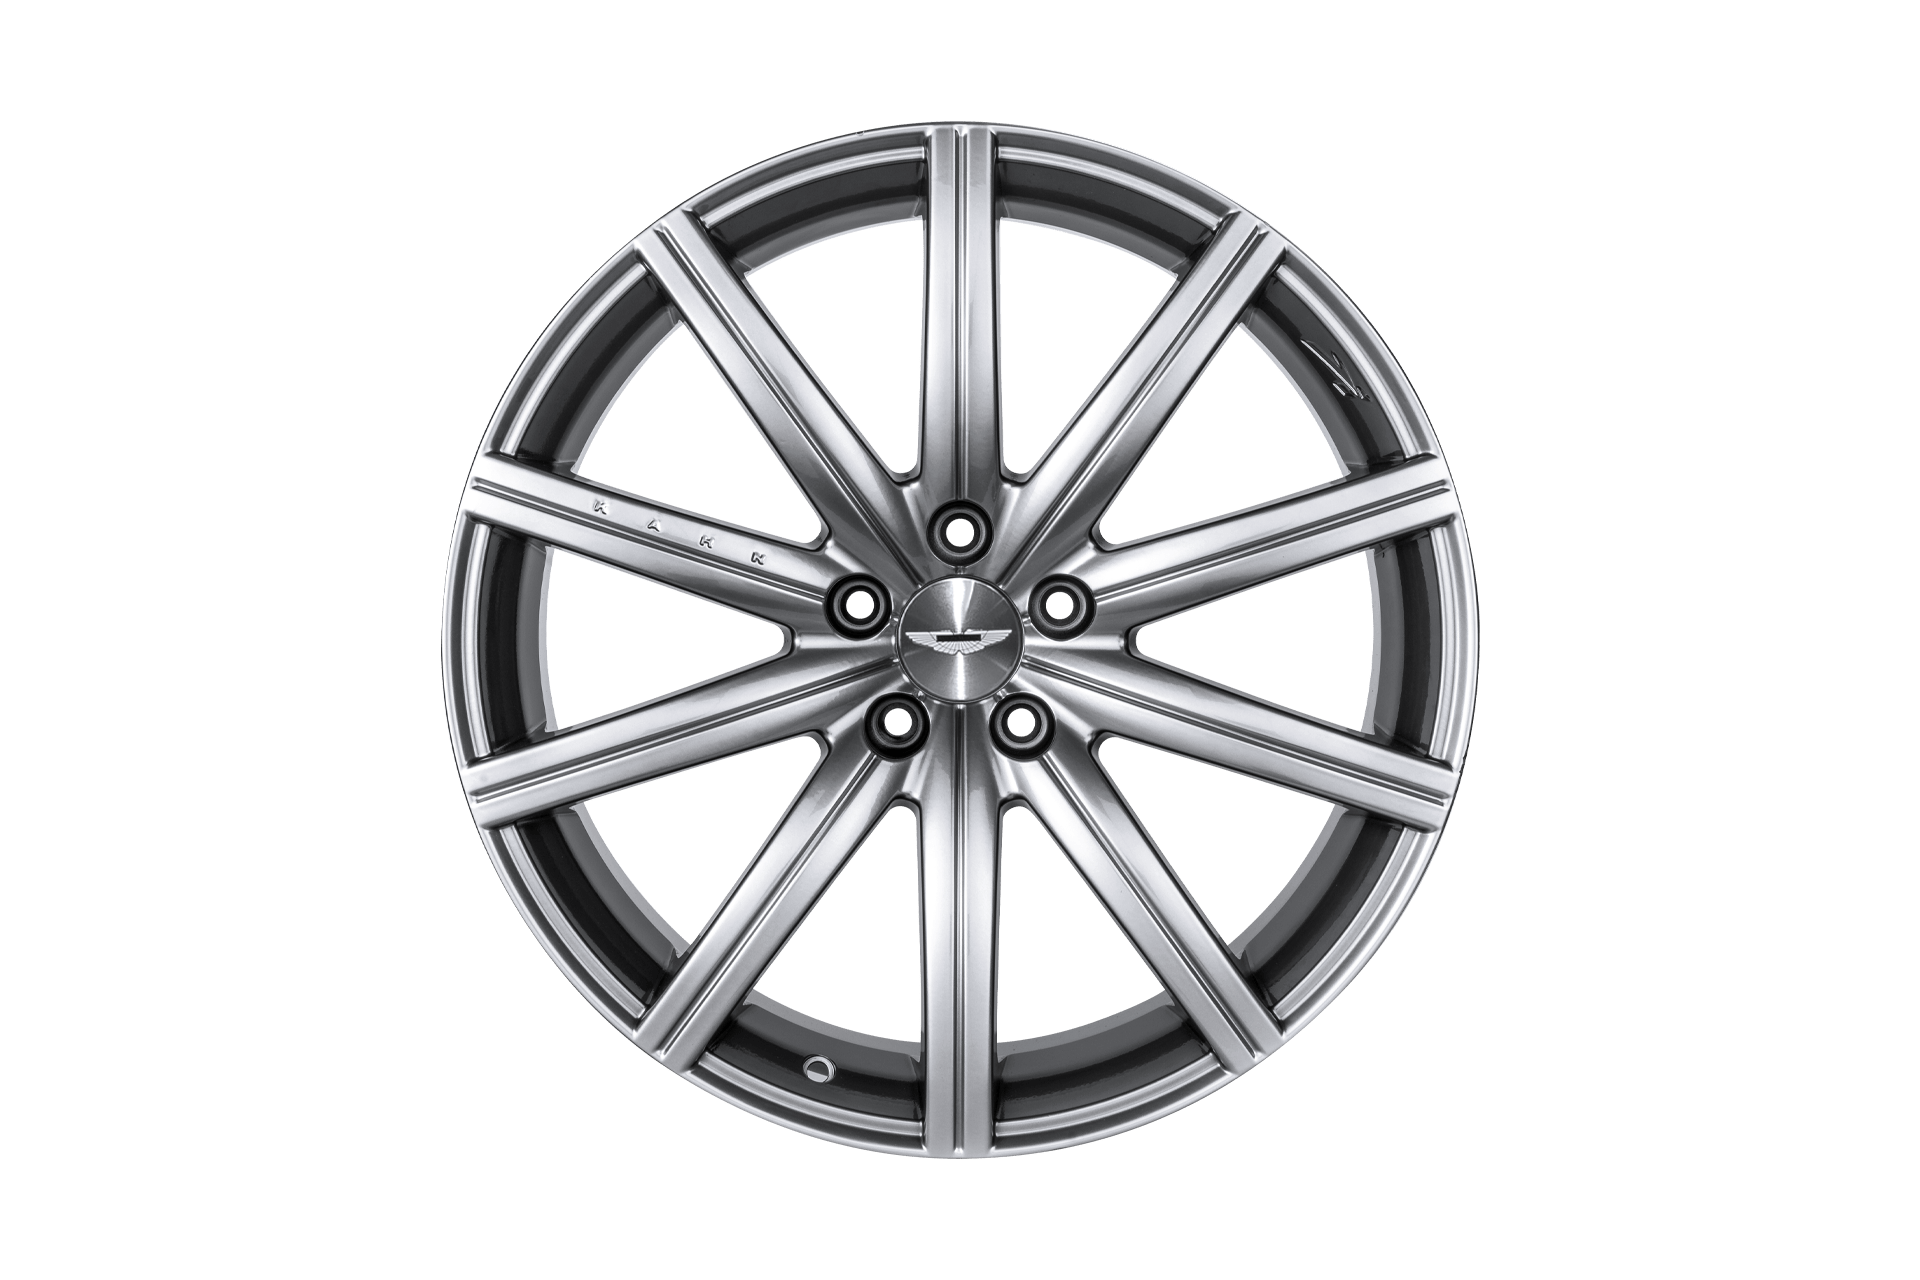 Aston Martin Db9 (2004-2016) Rsv Light Alloy Wheels Image 4637